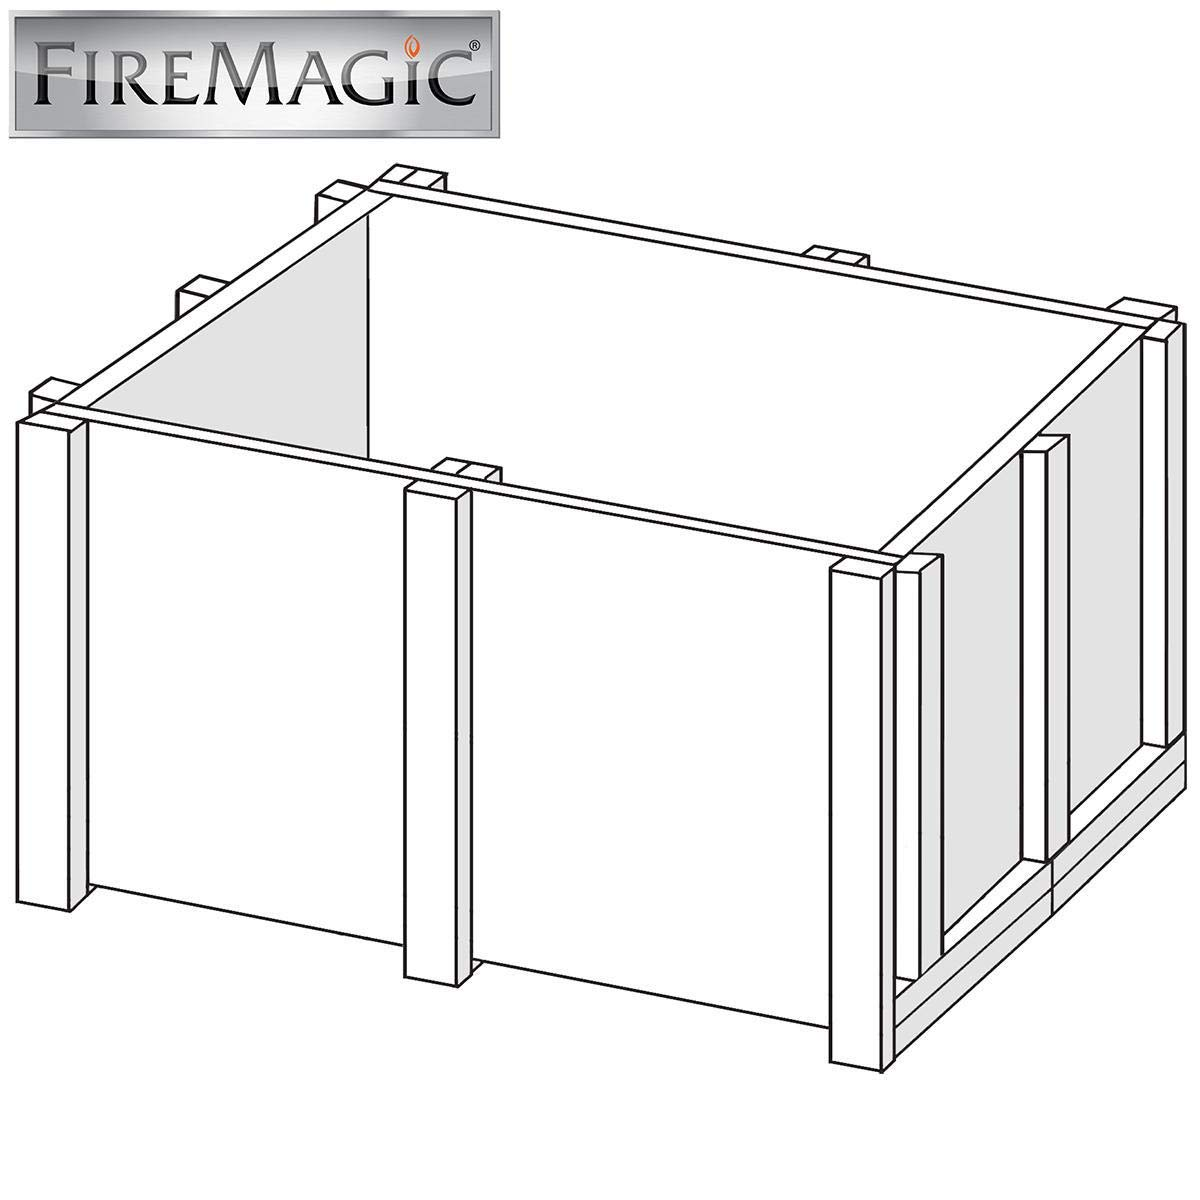 Fire Magic Insulated Jacket For Deluxe Classic Countertop Grills